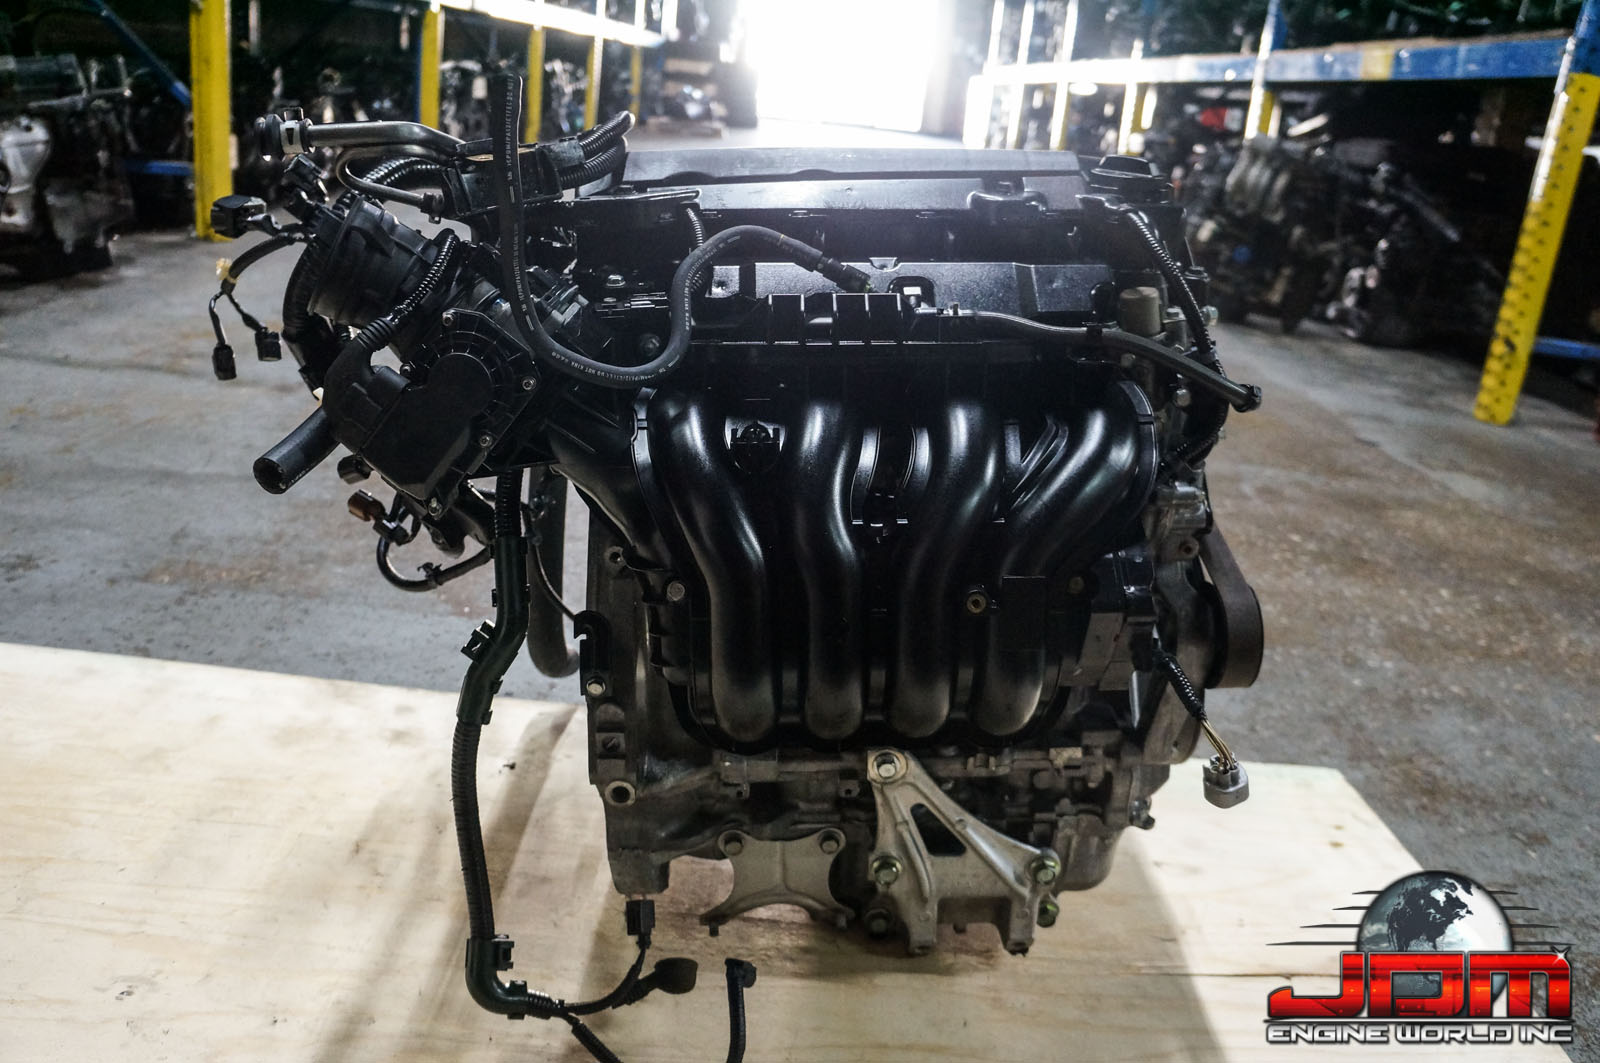 06-11 HONDA CIVIC ENGINE R18 1.8L SOHC VTEC JDM R18A